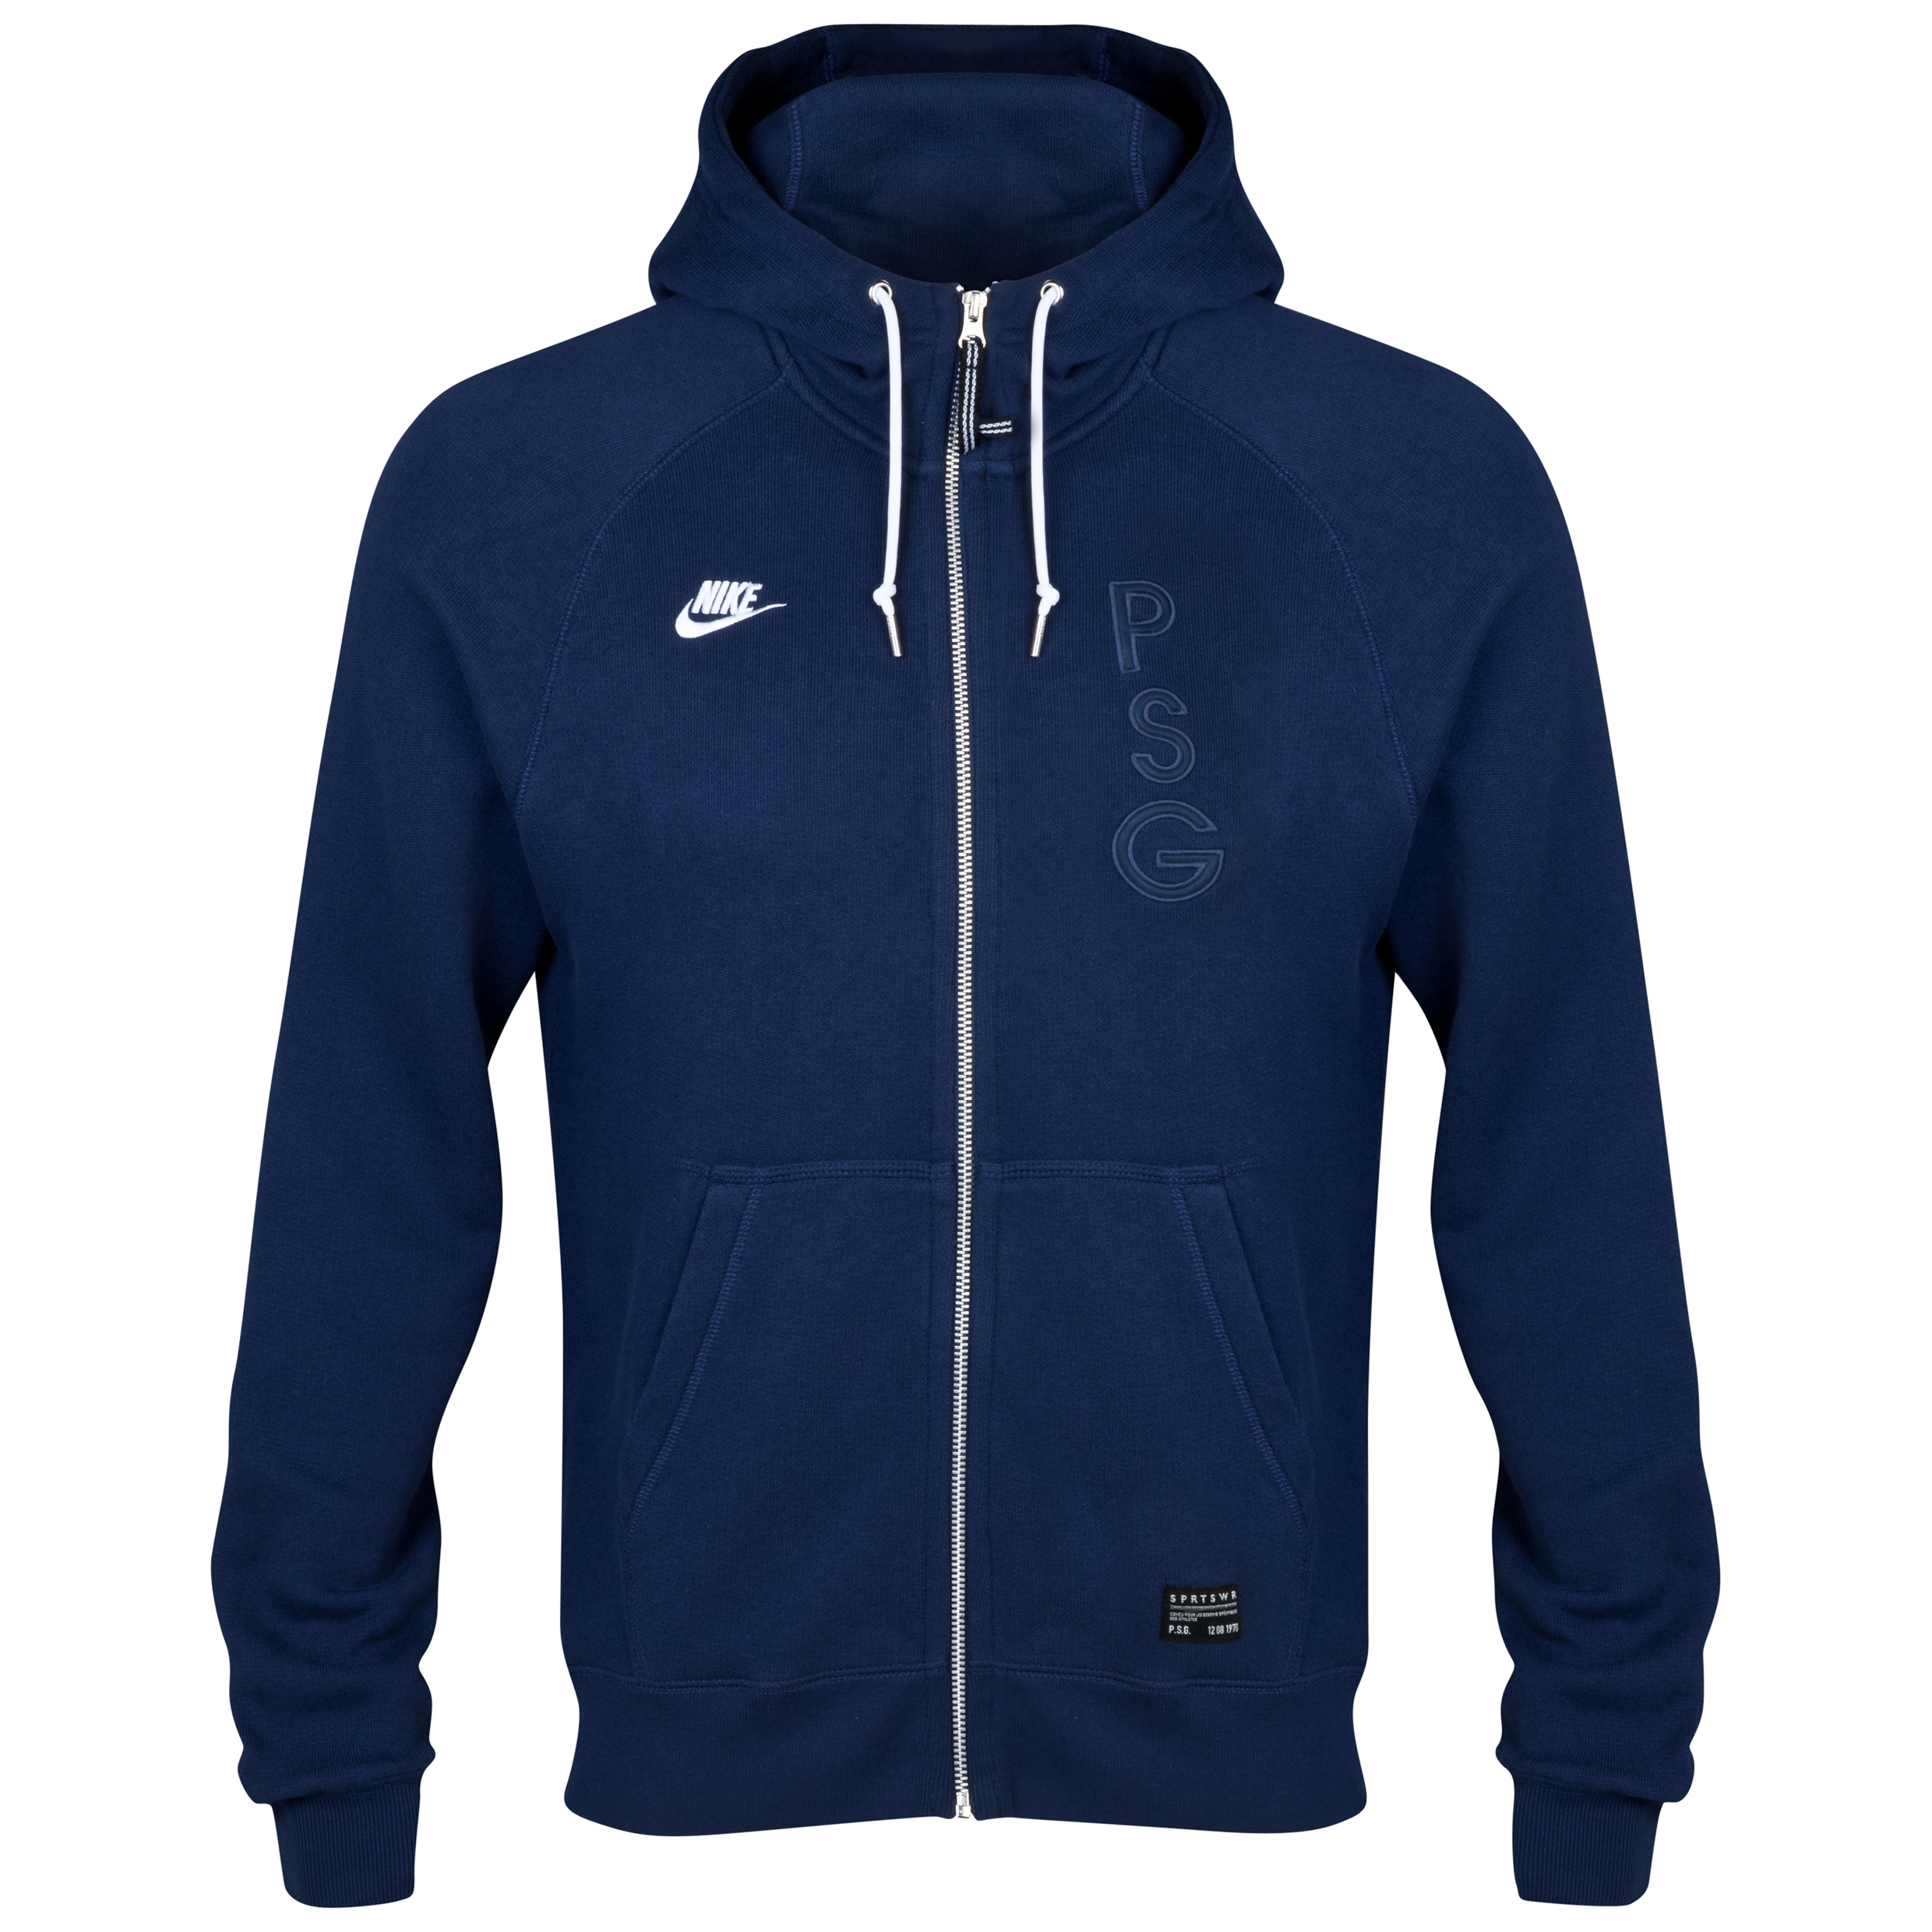 Paris Saint-Germain Covert AW77 Full Zip Hoody Navy